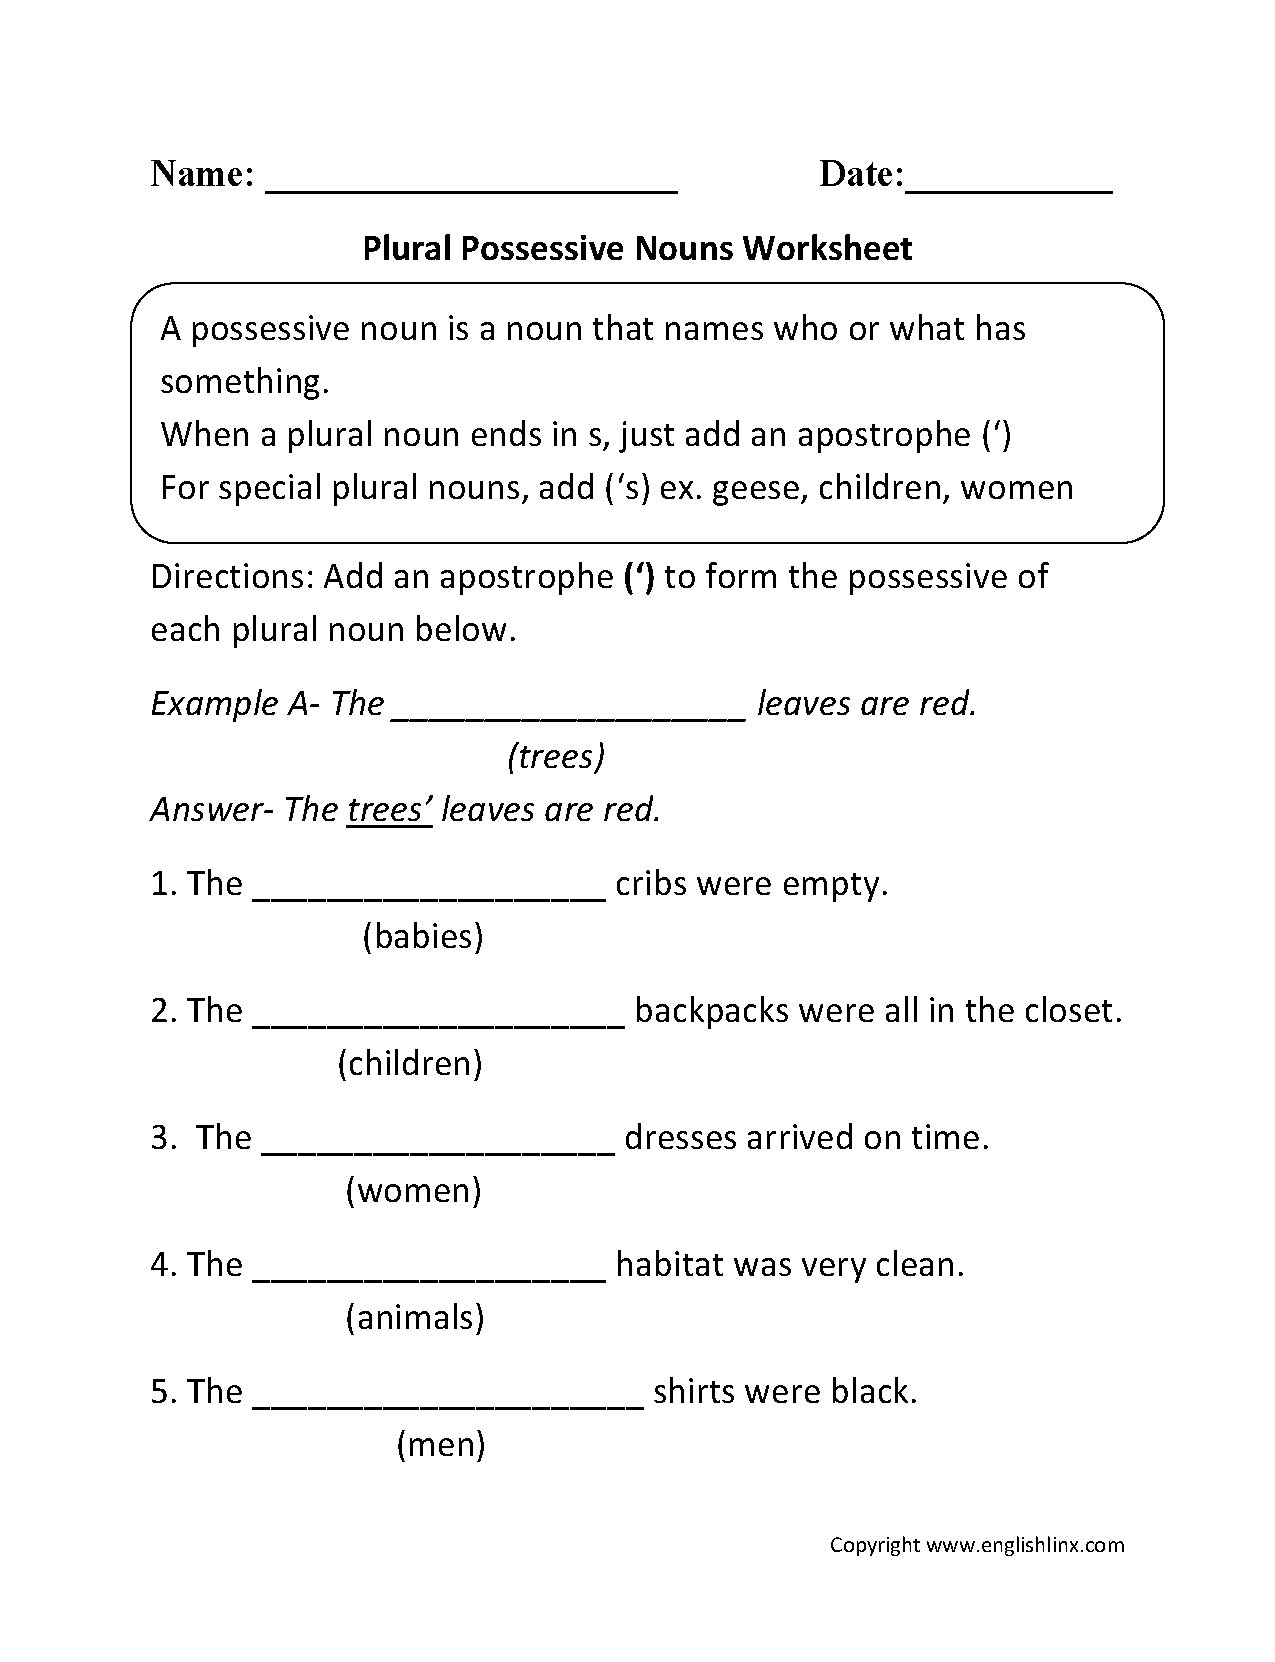 Aldiablosus  Personable Nouns Worksheets  Possessive Nouns Worksheets With Handsome Possessive Nouns Worksheets With Awesome The Law Of Sines Worksheet Answers Also Multiplication Fact Worksheets In Addition Tax Computation Worksheet  And Area Of Composite Figures Worksheet Answers As Well As Imperialism Worksheet Additionally Carson Dellosa Worksheet Answers From Englishlinxcom With Aldiablosus  Handsome Nouns Worksheets  Possessive Nouns Worksheets With Awesome Possessive Nouns Worksheets And Personable The Law Of Sines Worksheet Answers Also Multiplication Fact Worksheets In Addition Tax Computation Worksheet  From Englishlinxcom